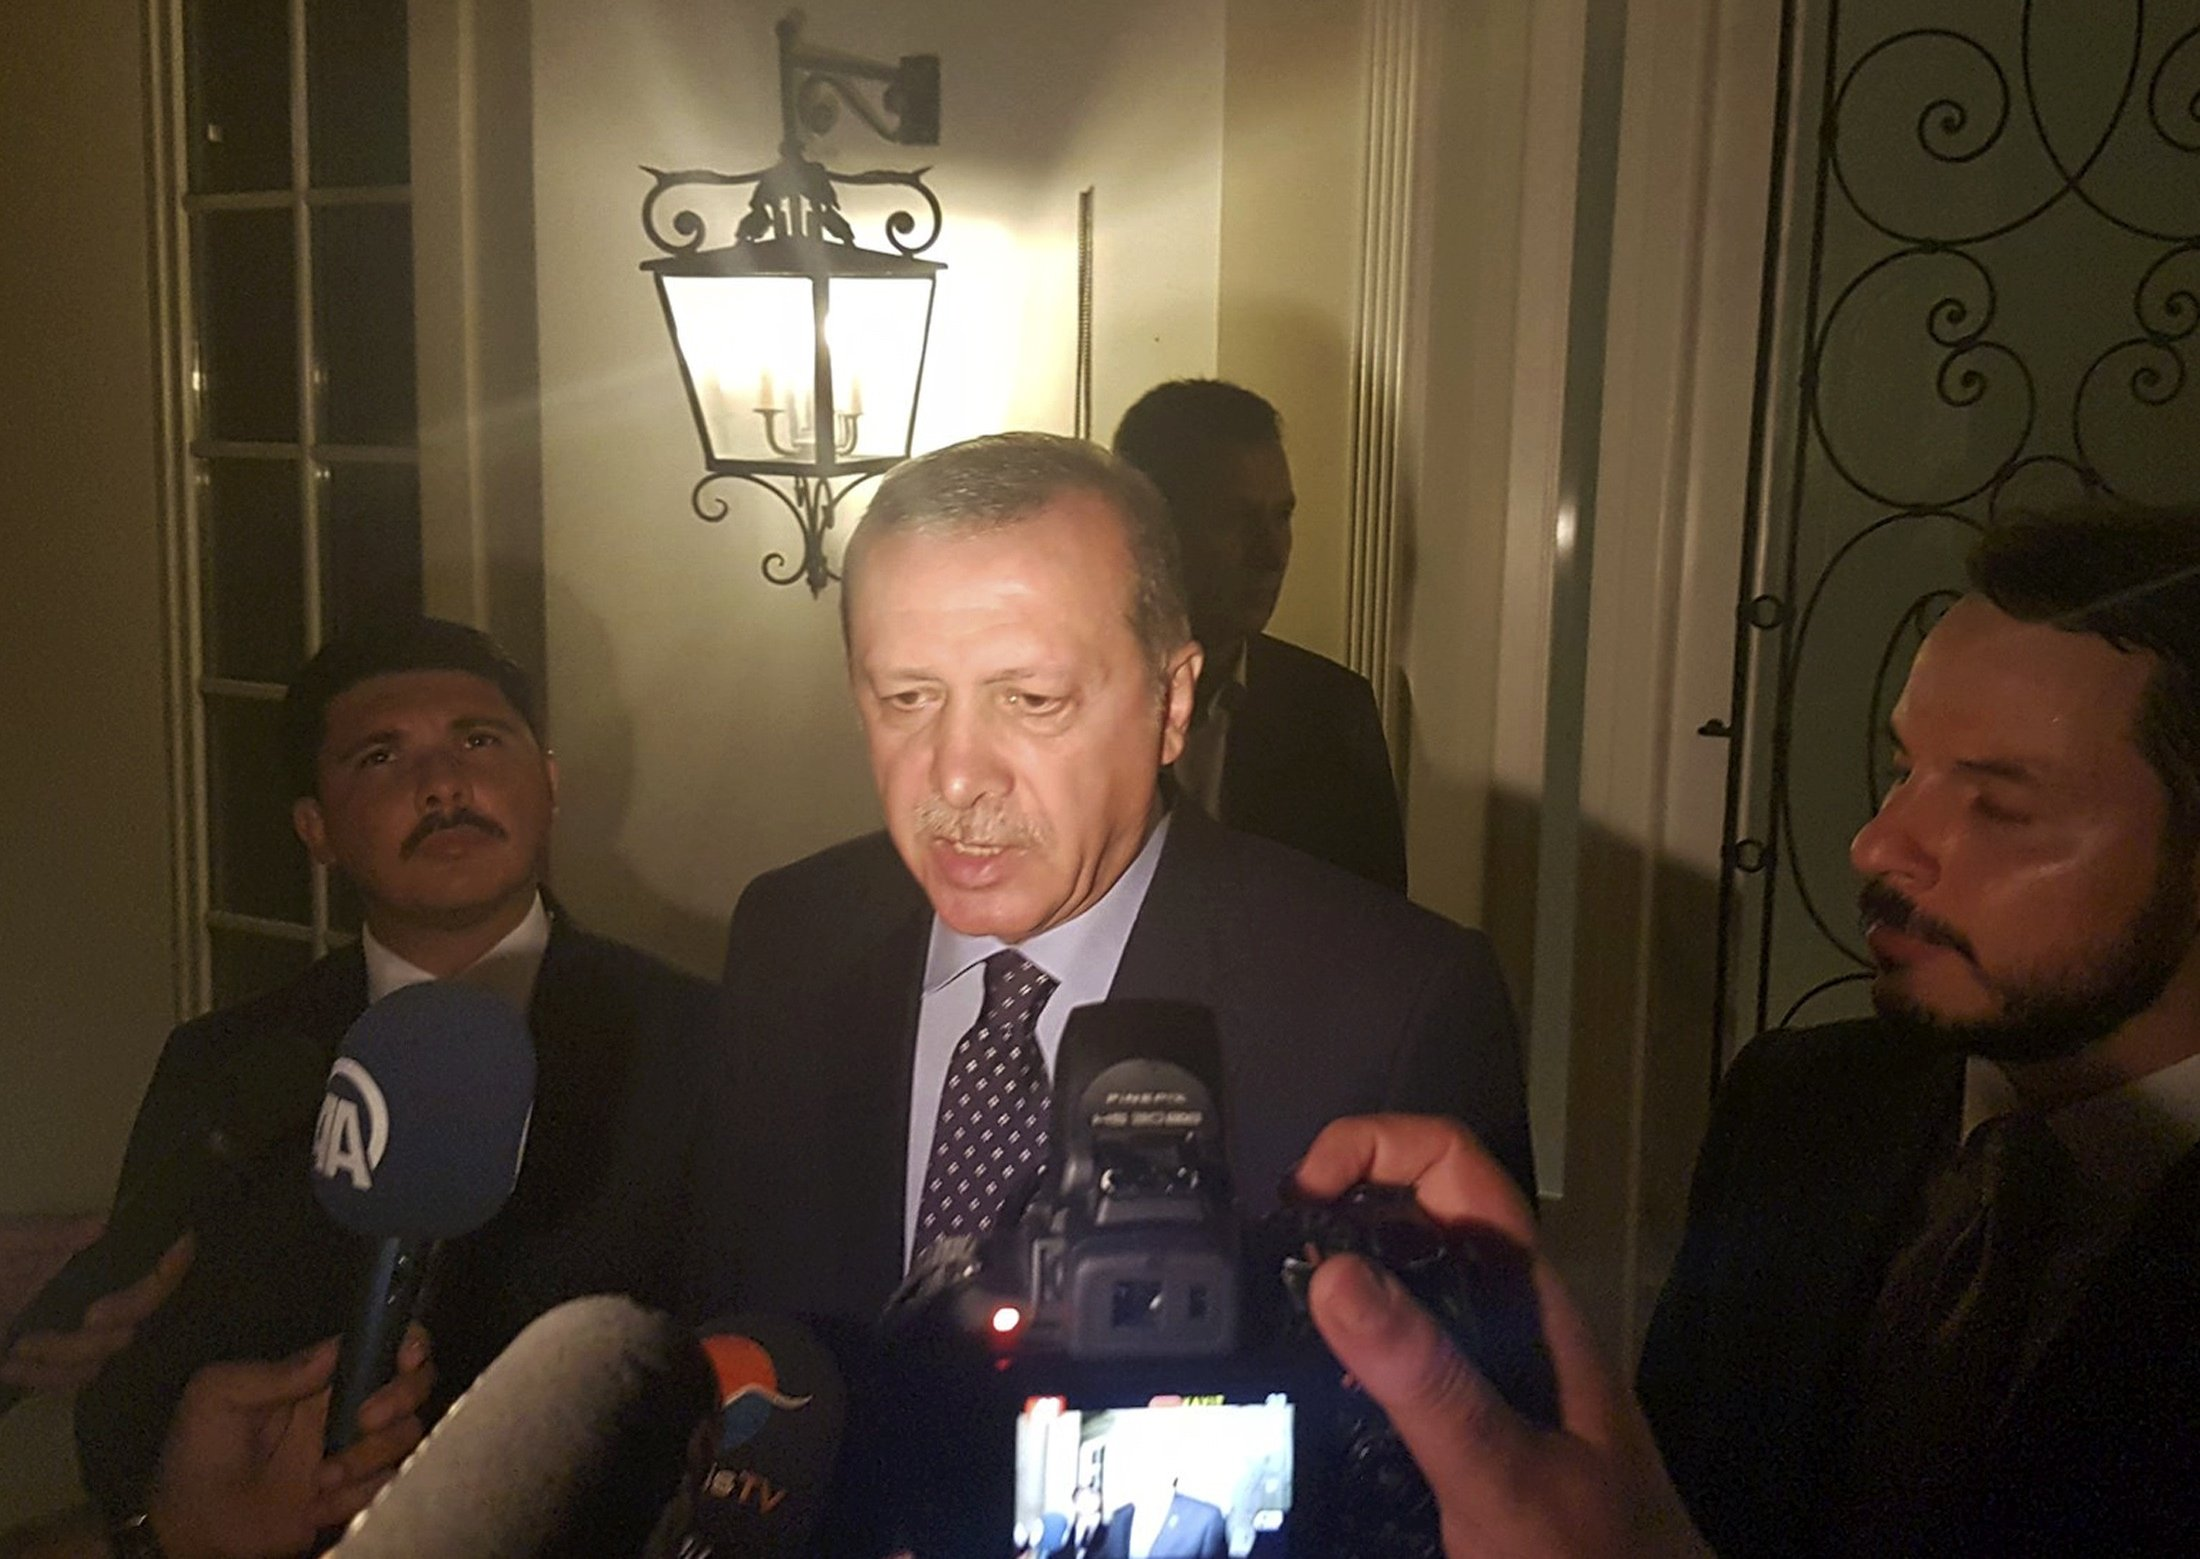 Turkish President Recep Tayyip Erdogan speaks to media in the resort town of Marmaris, Turkey, on July 15, 2016.